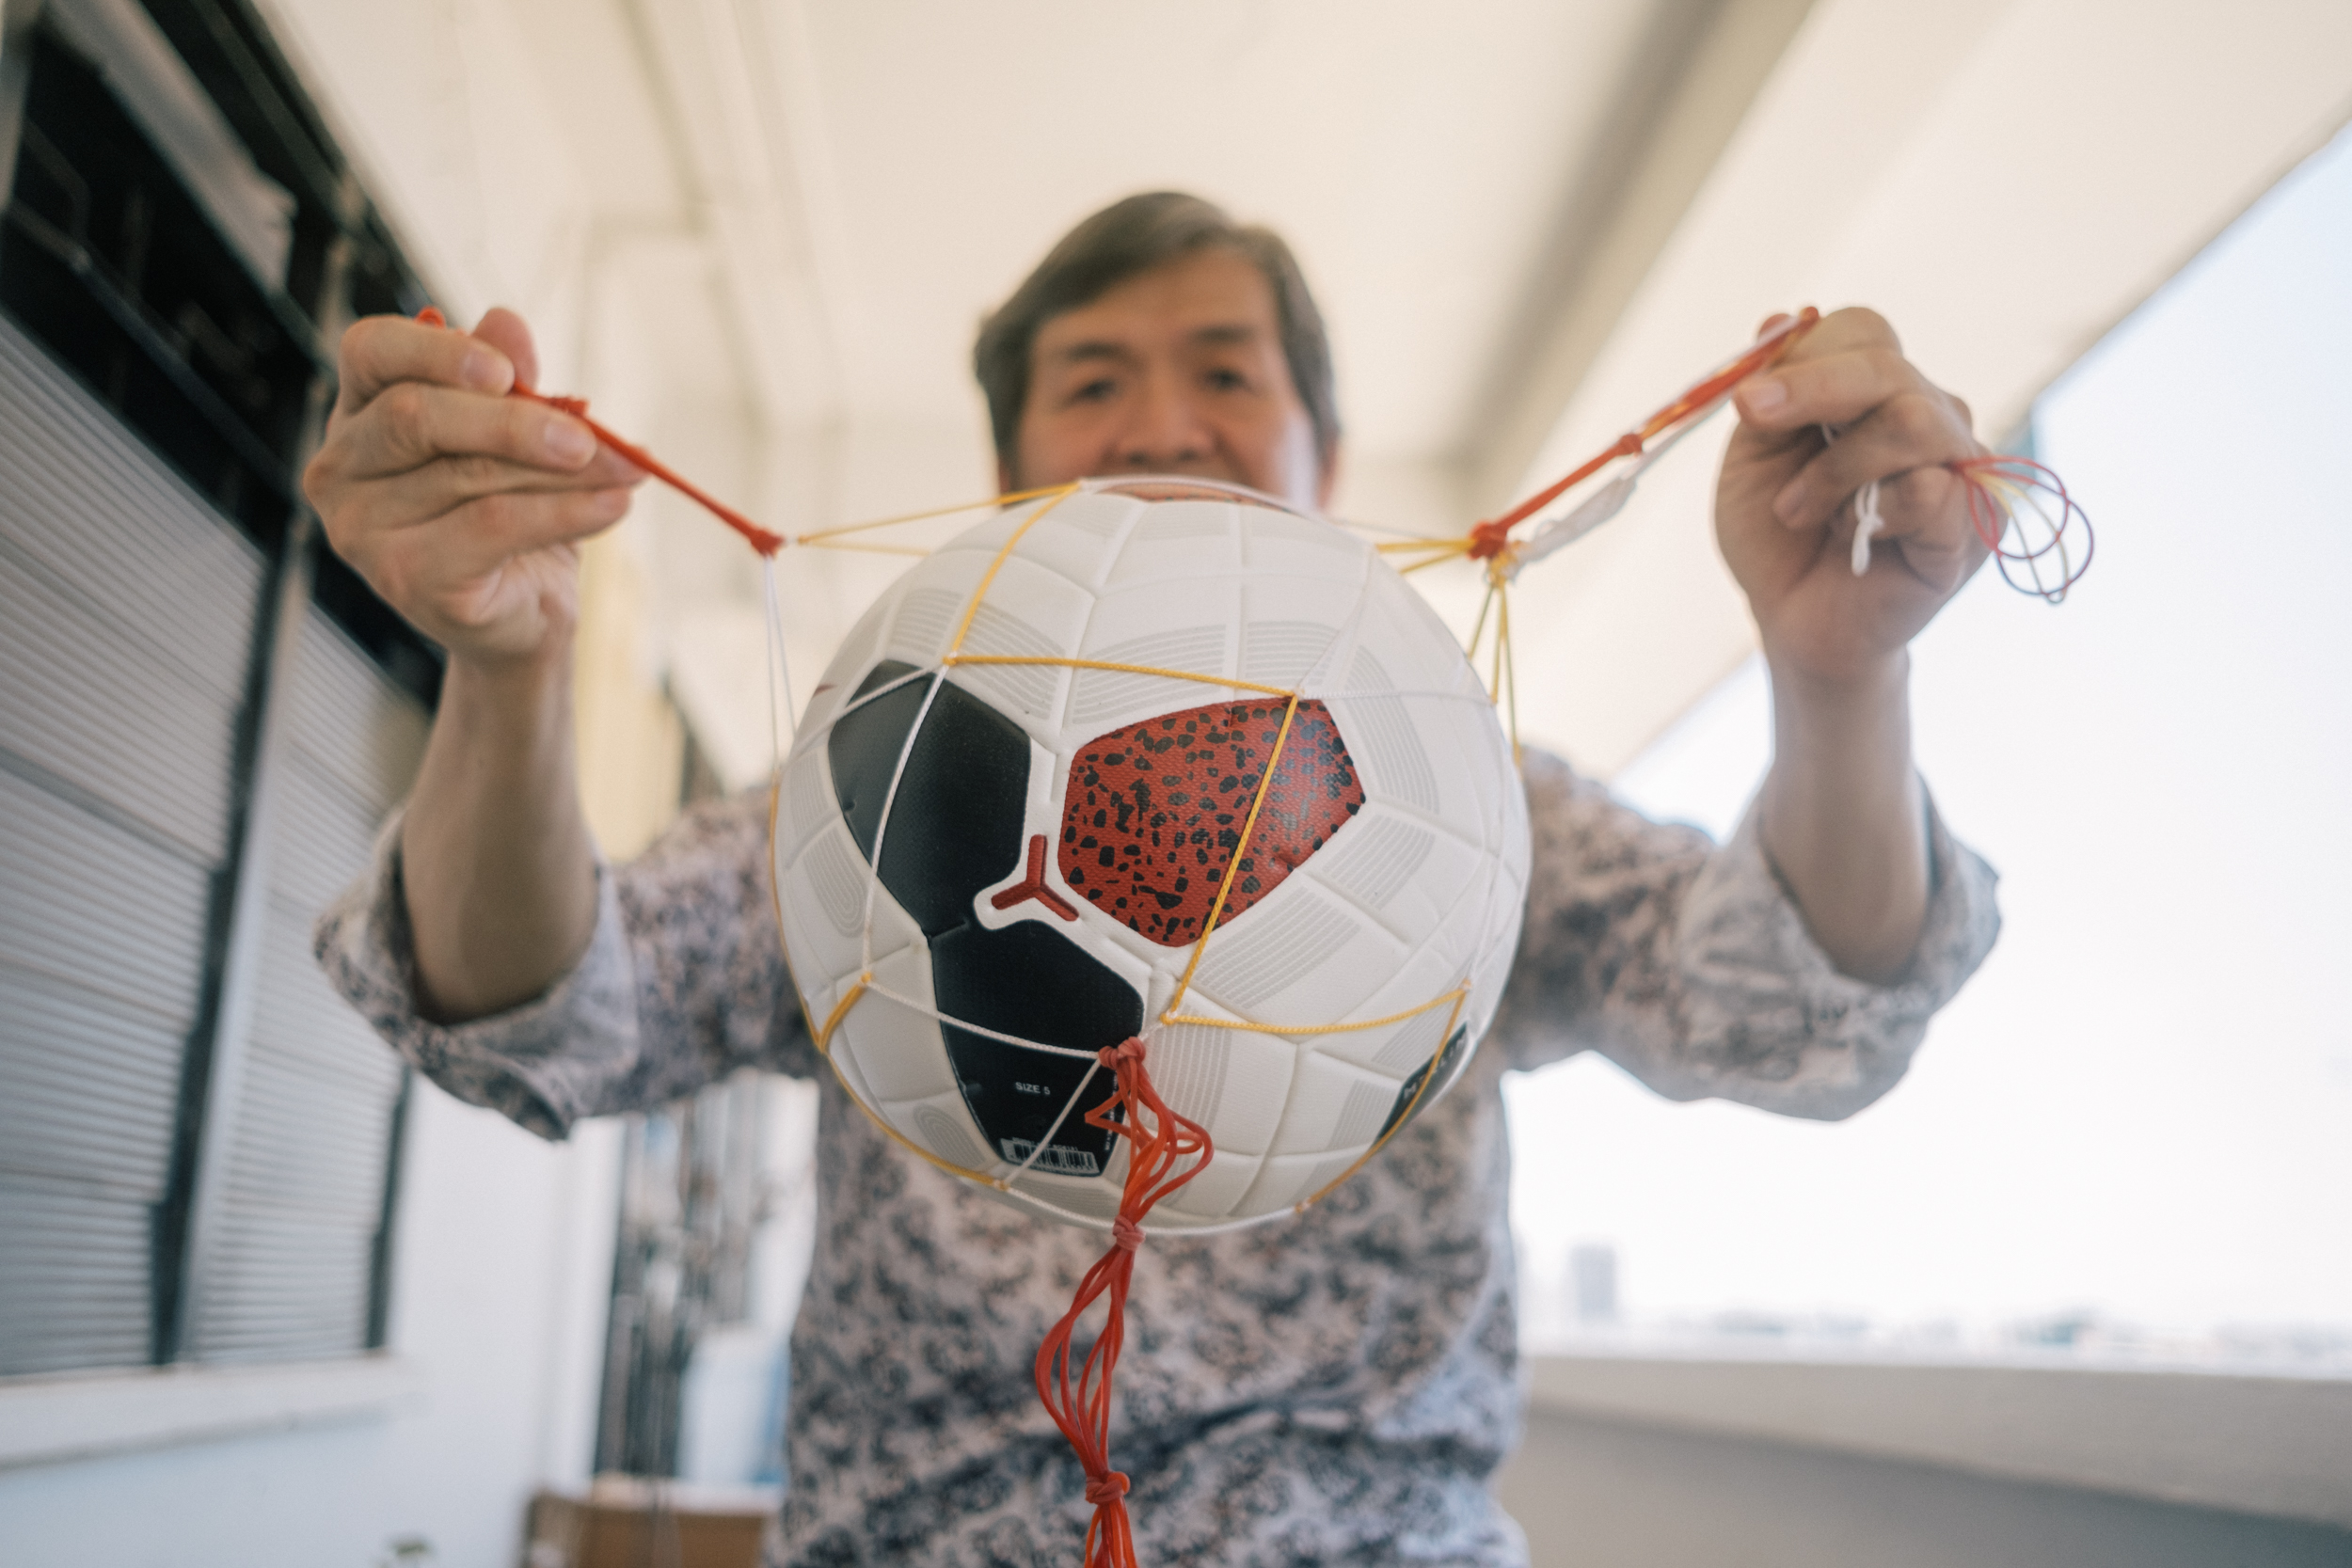 Image of the contraption Henry Leong made to practice juggling